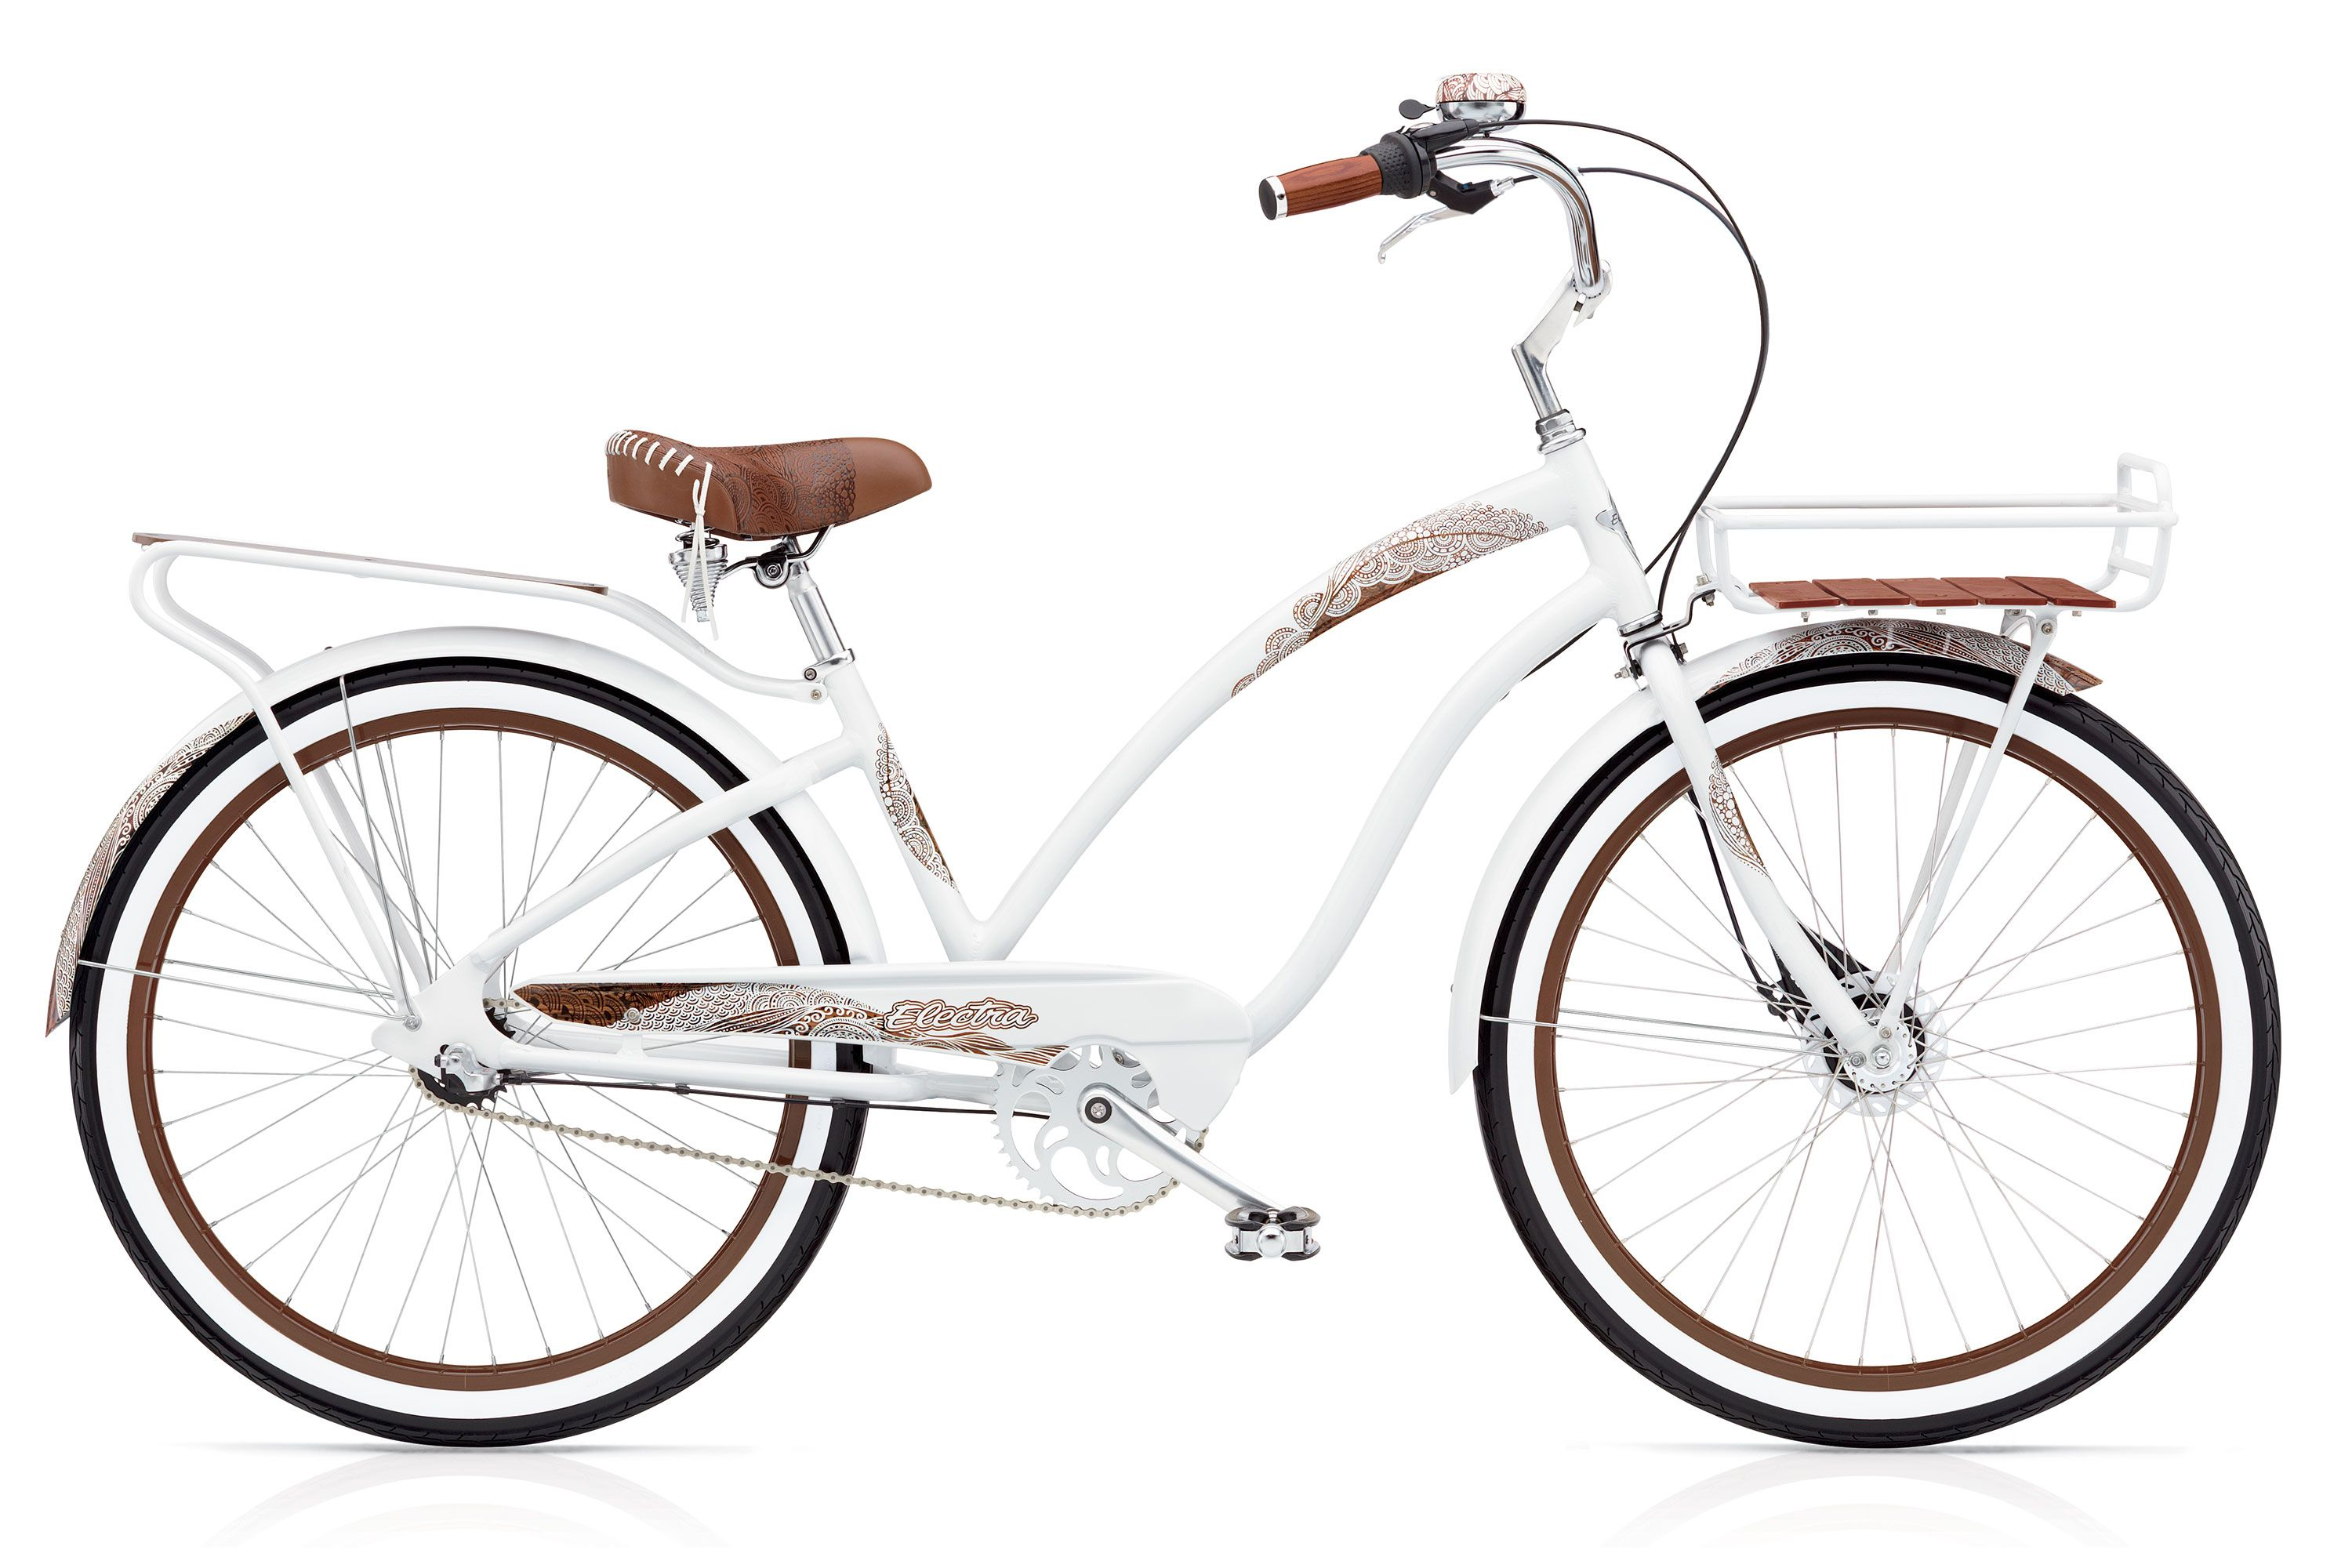 Electra Bicycle Company Bikes Accessories Electra Bikes Electra Bike Cruiser Bike Beach Cruiser